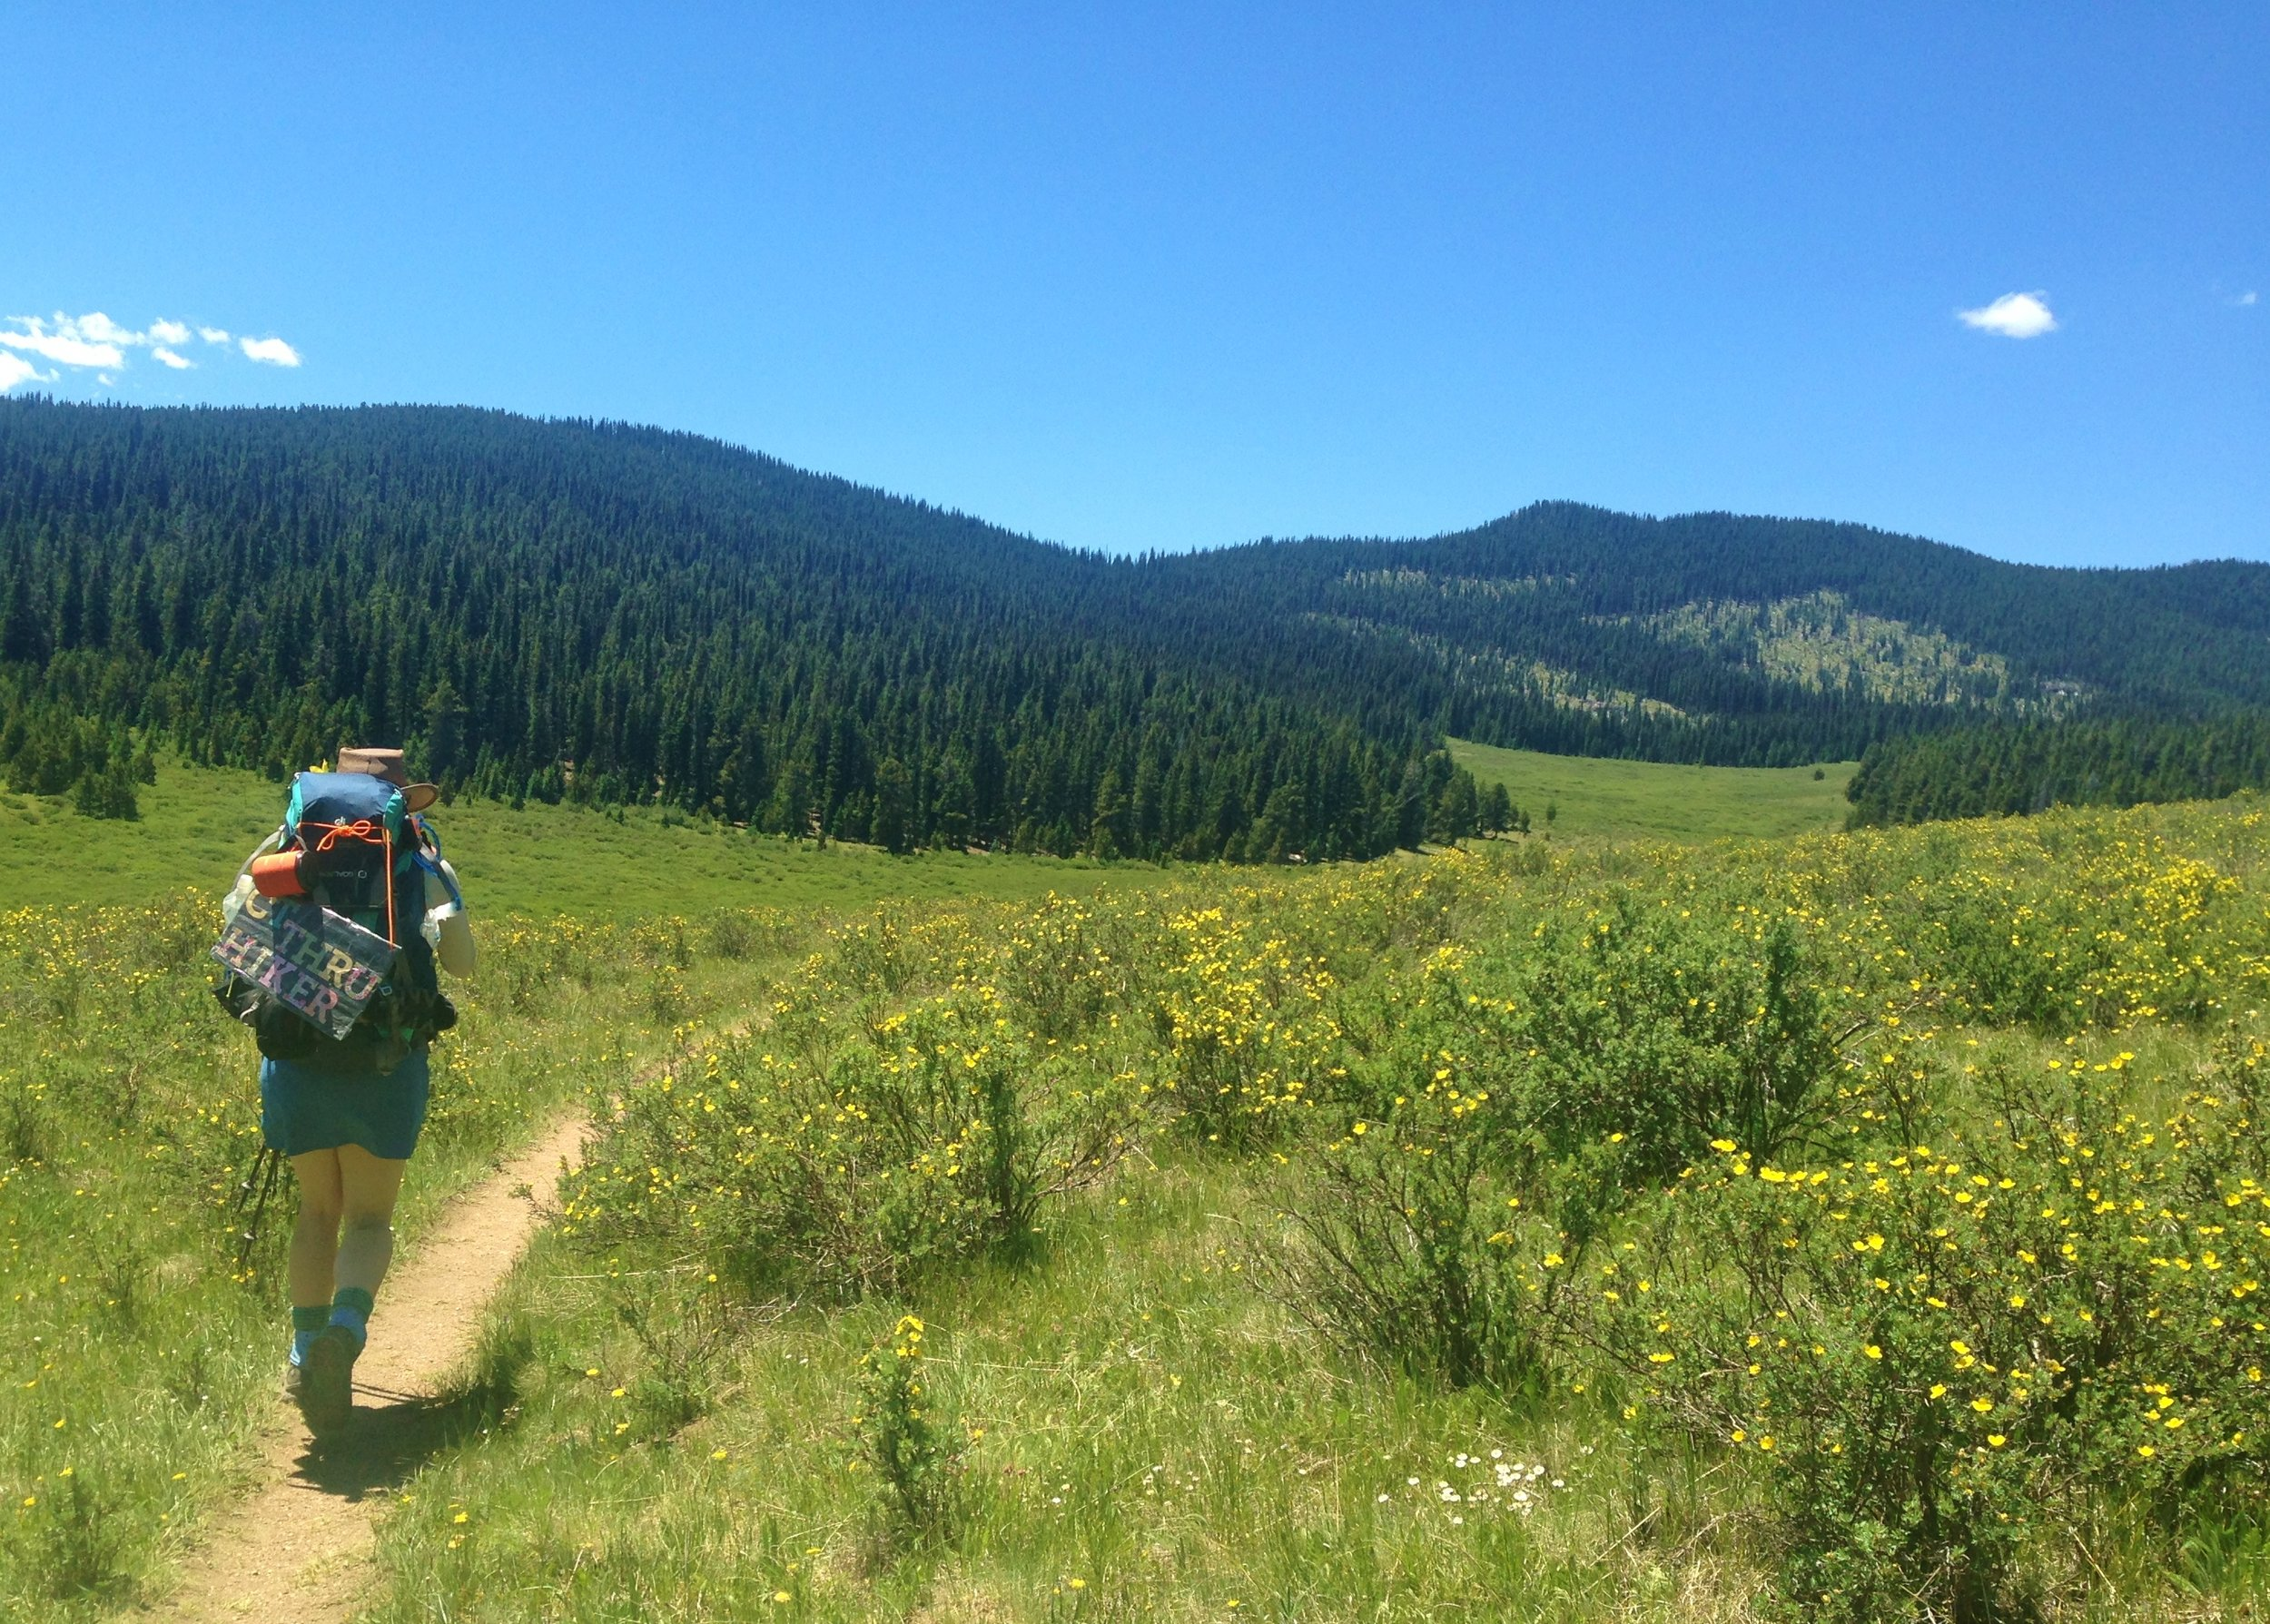 Day 5:  My family went home and I was on my own again. I hiked through Lost Creek Wilderness, past Brookside-McCurdy Trail, and along six mellow miles of meadow (seen here with a fellow thru-hiker) toward Long Gulch Trailhead.  Daily mileage: 16.9. Total miles: 57.1.